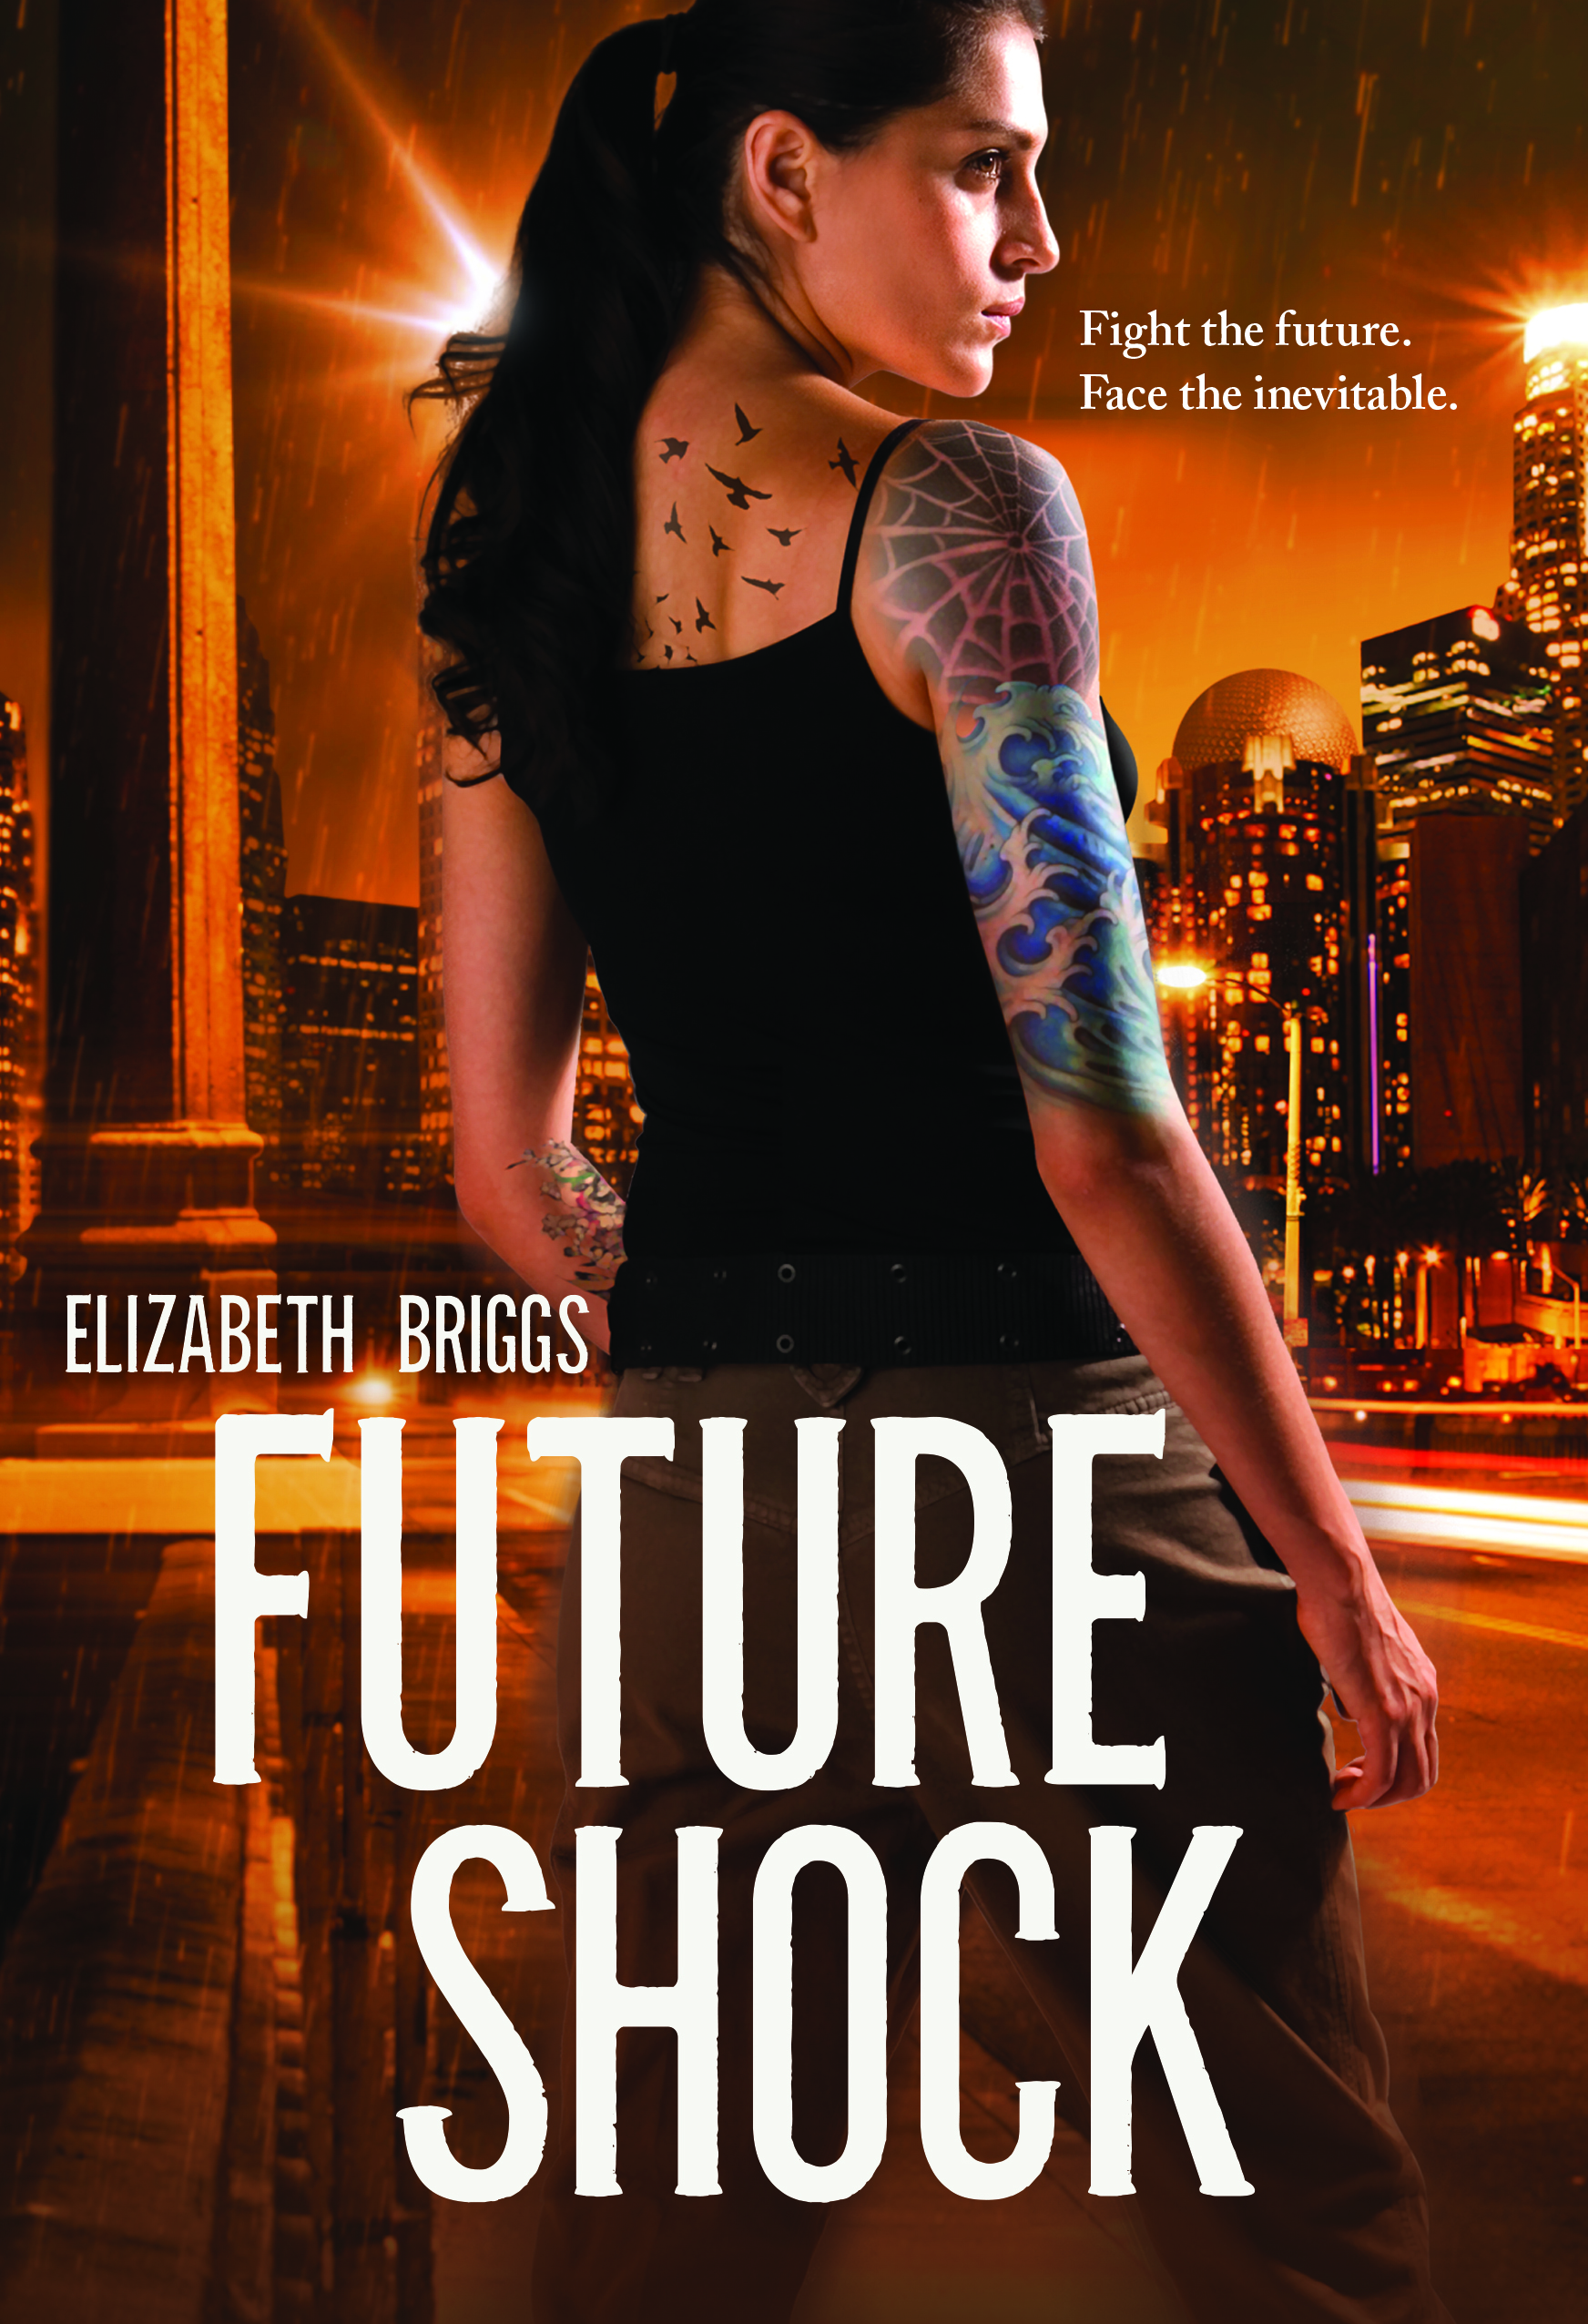 Future Shock - Wikipedia